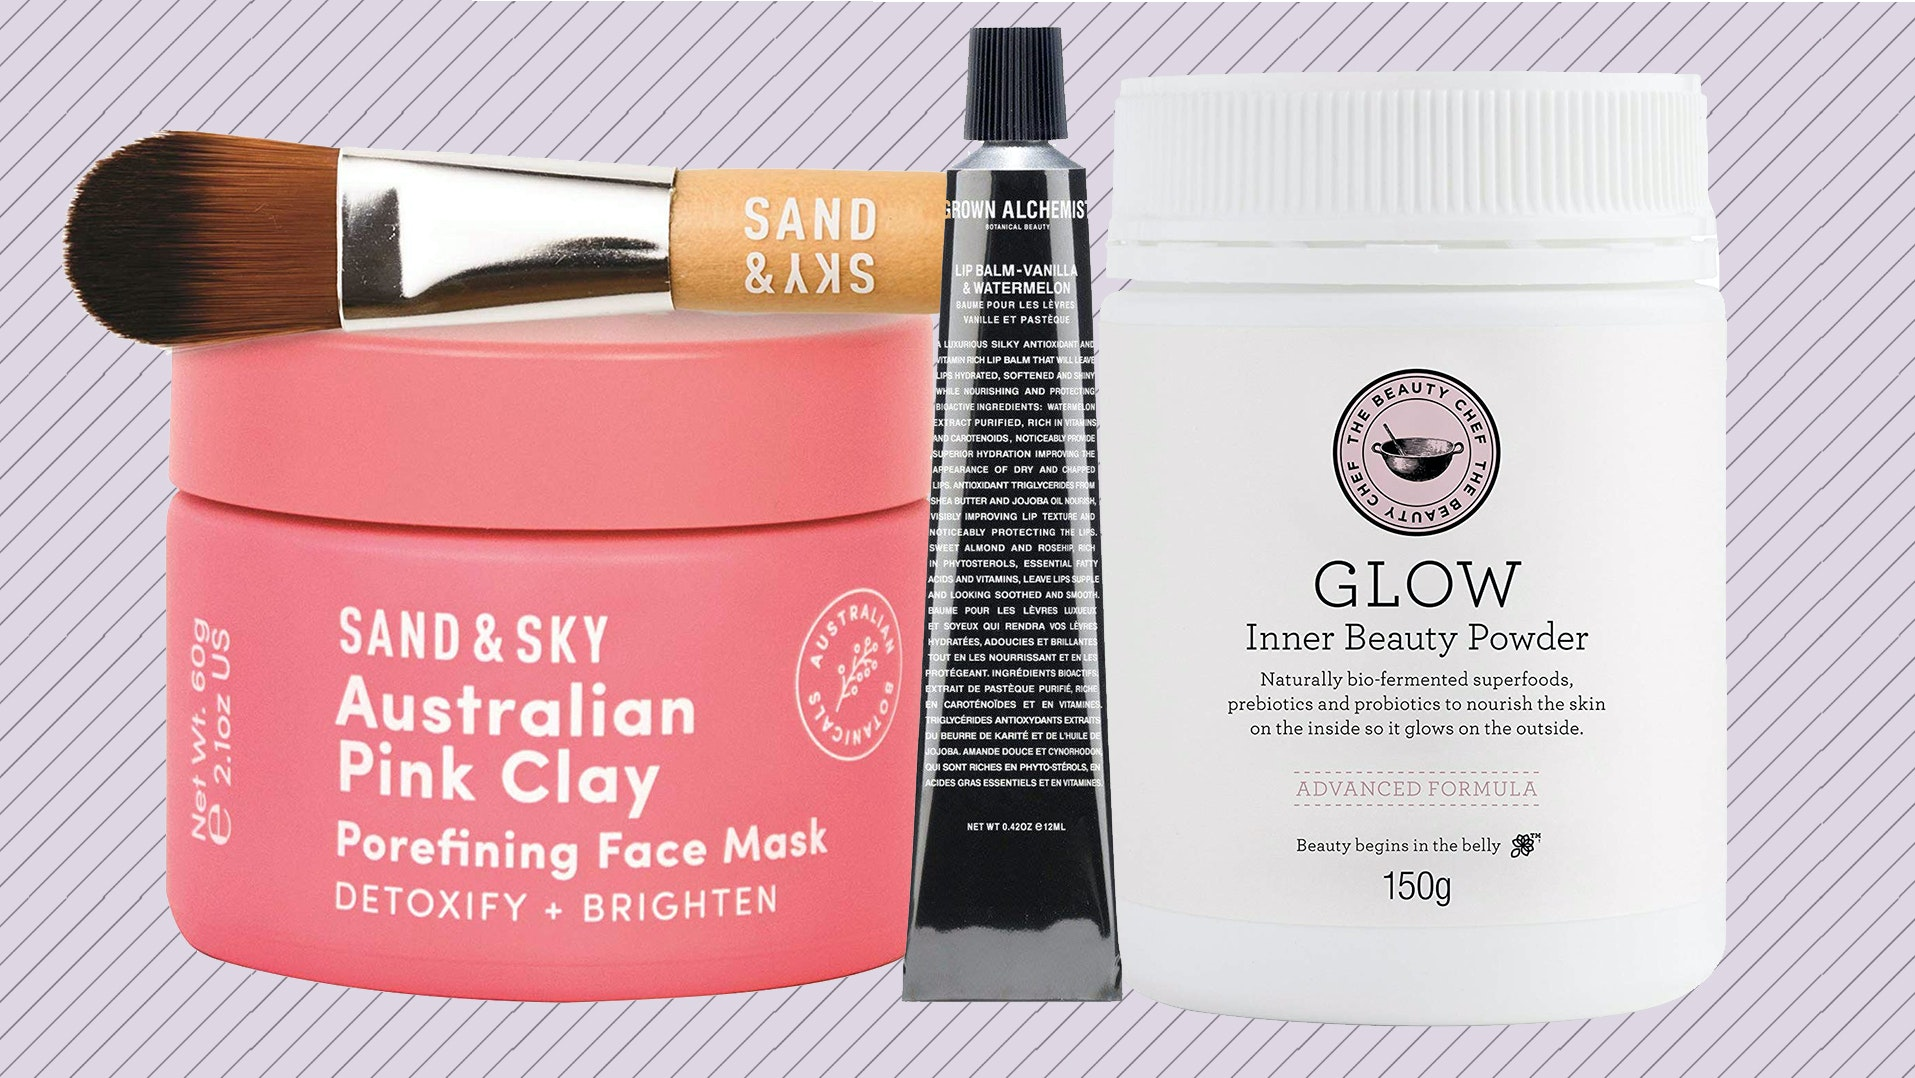 A-Beauty (Australian Beauty) Is the Next Global Beauty Trend You're Going to Fall in Love With